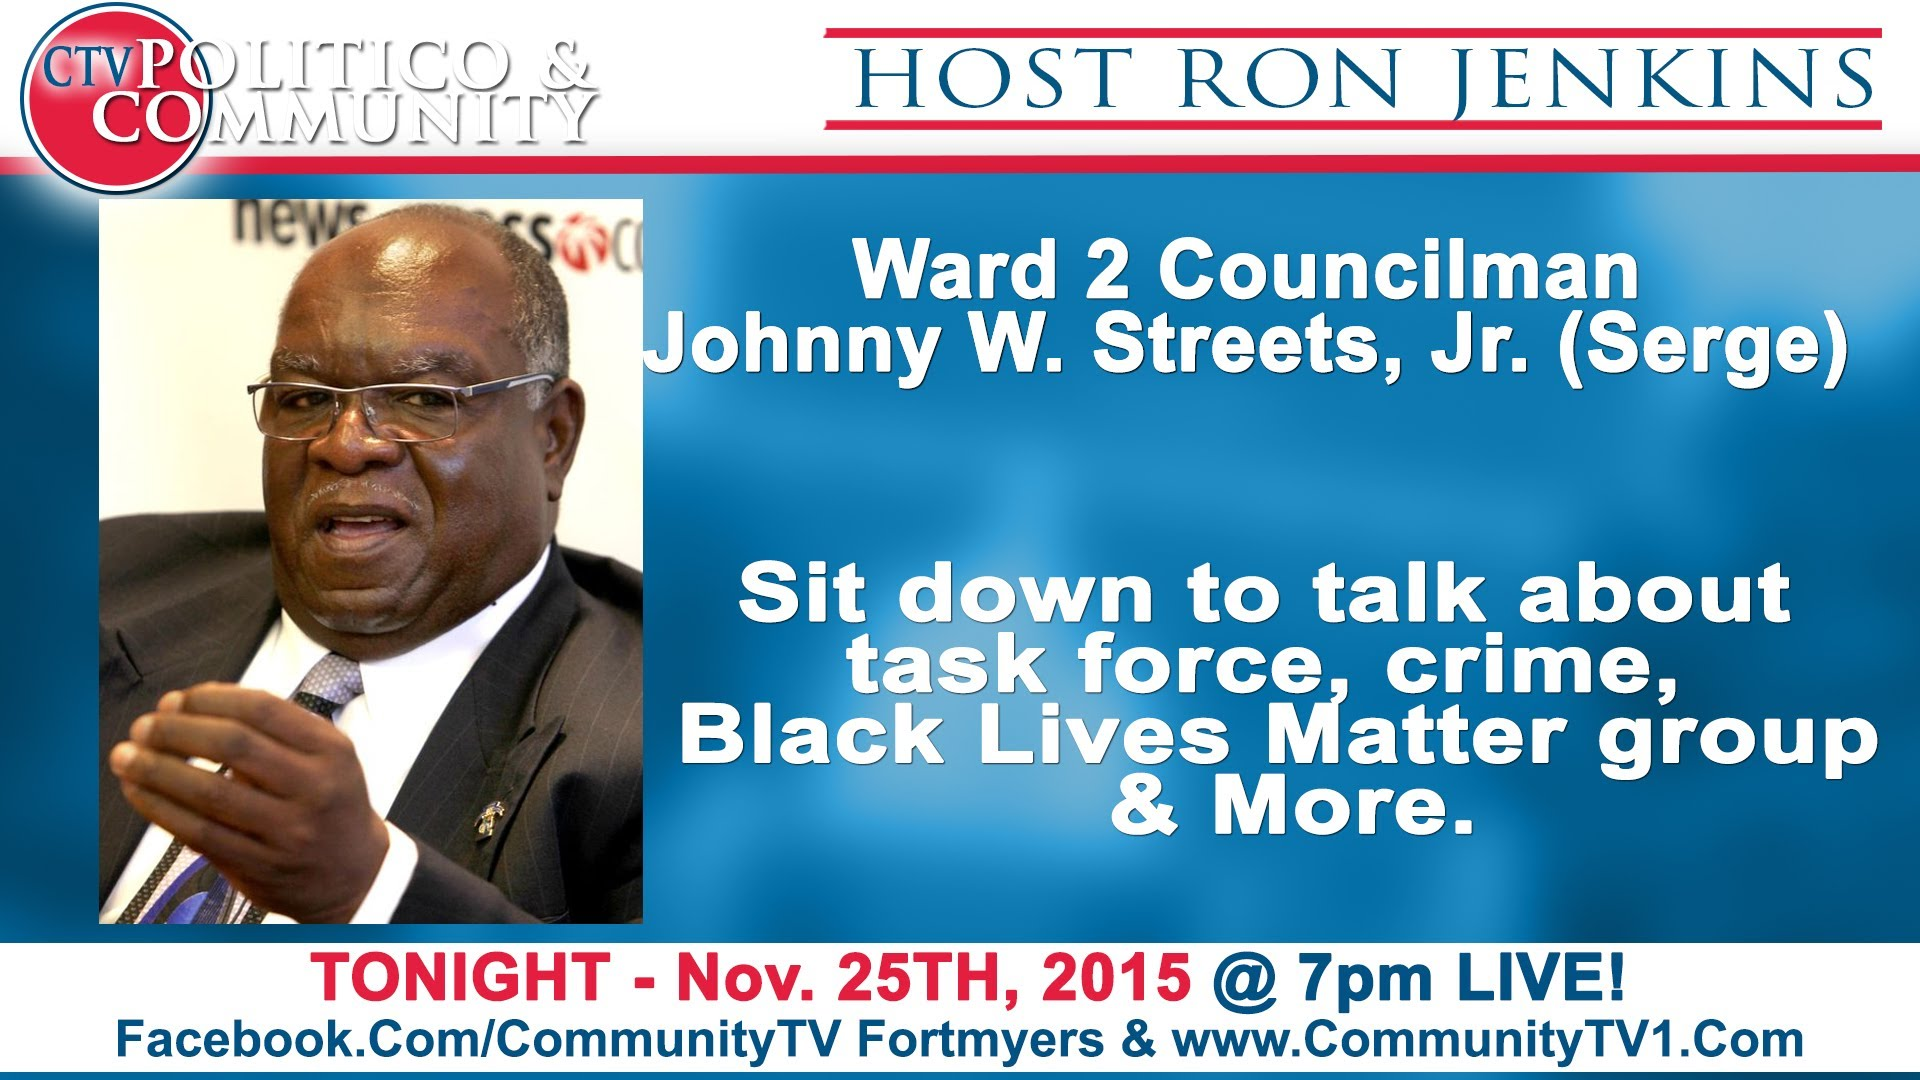 11-25-2015 CTV POLITICO & COMMUNITY - studio guest Councilman Johnny Streets